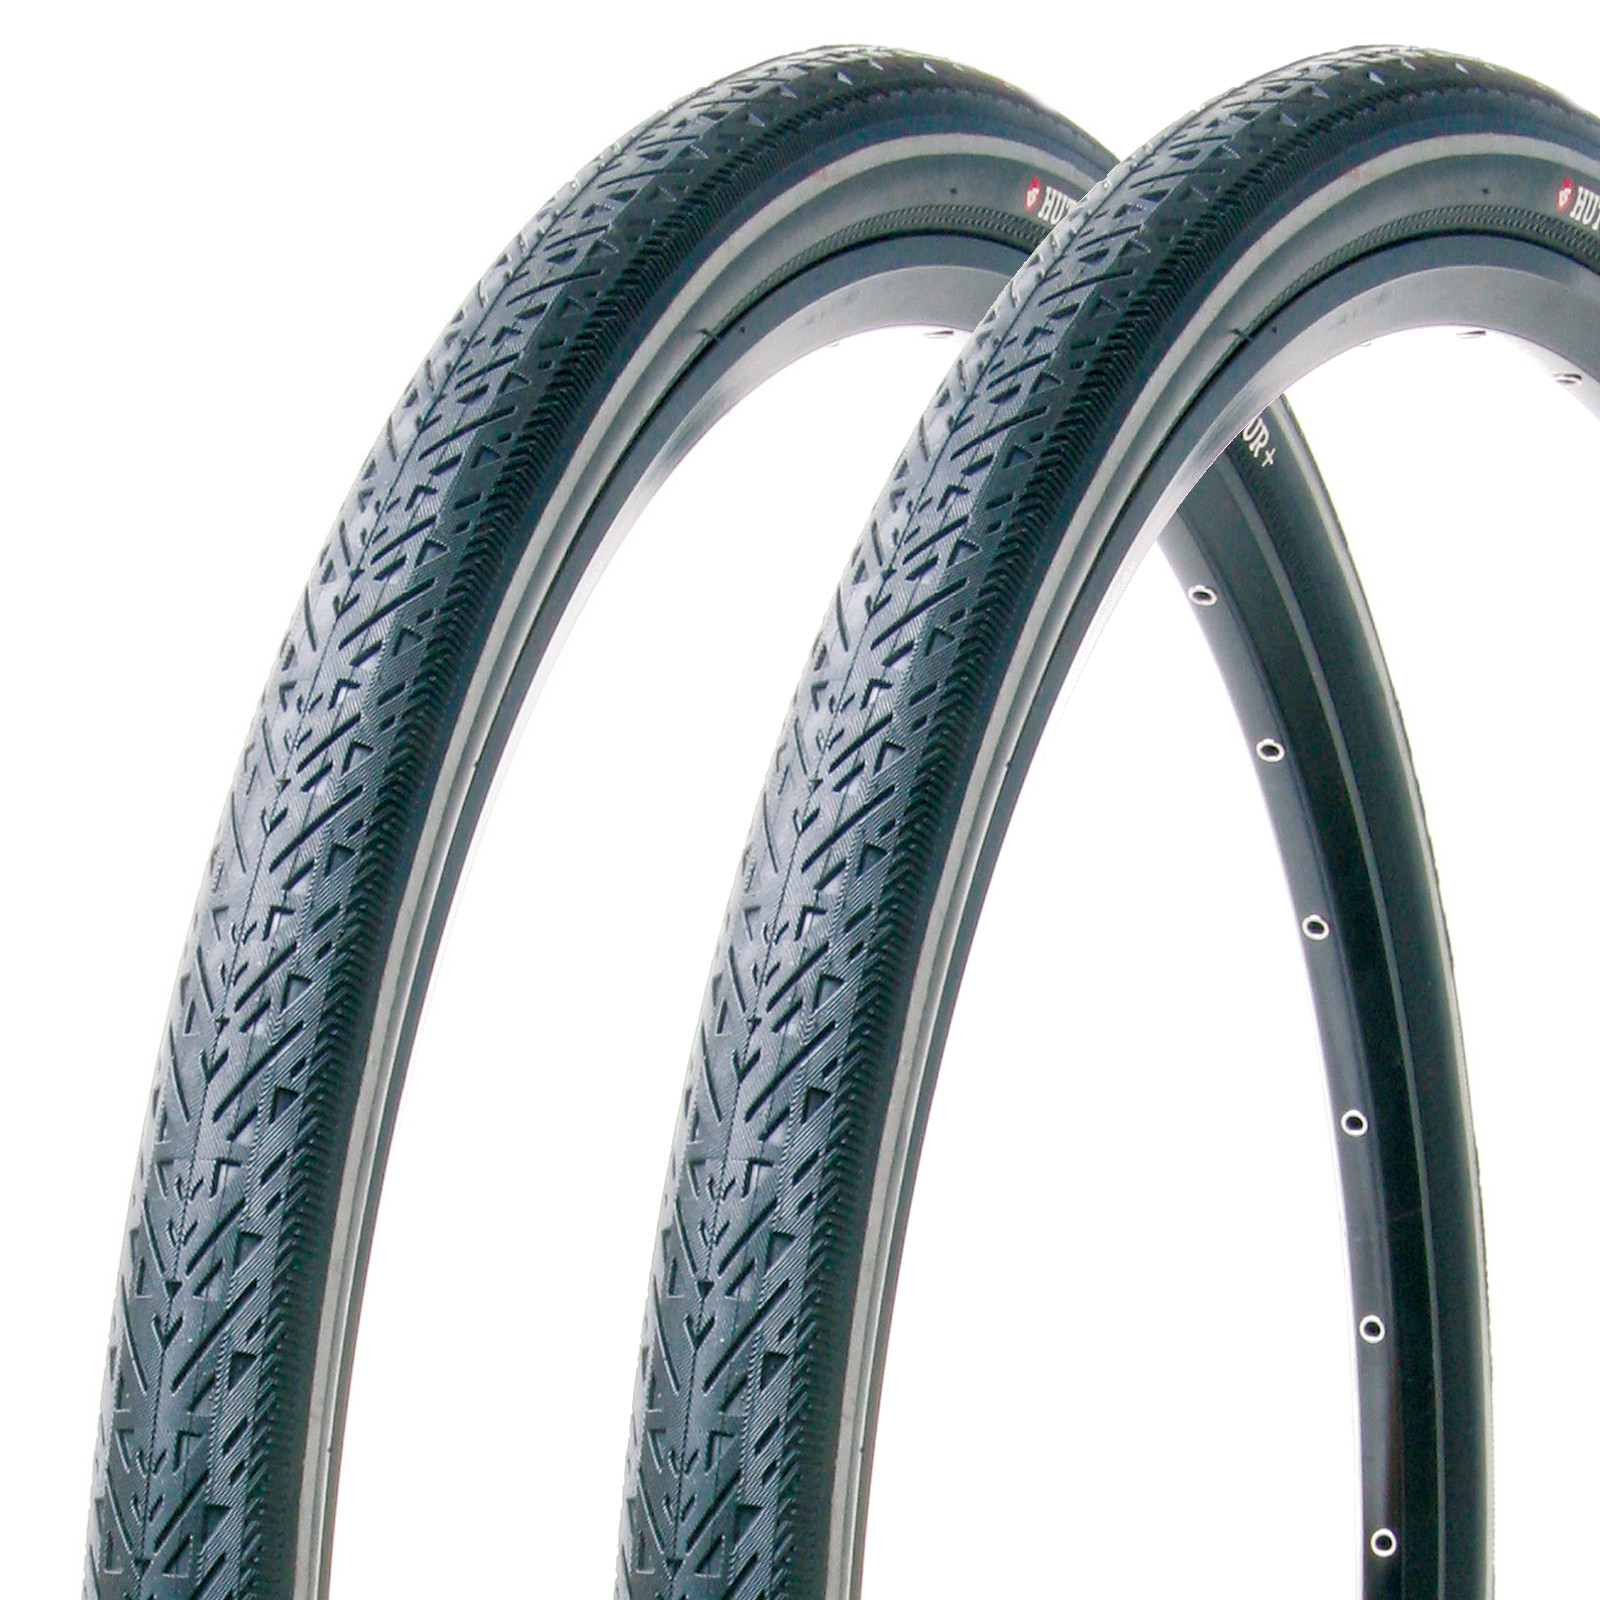 700C-City-Bike-Tyres-amp-Schrader-Tubes-Hutchinson-Urban-Tour-700-X-35C-Pair thumbnail 2